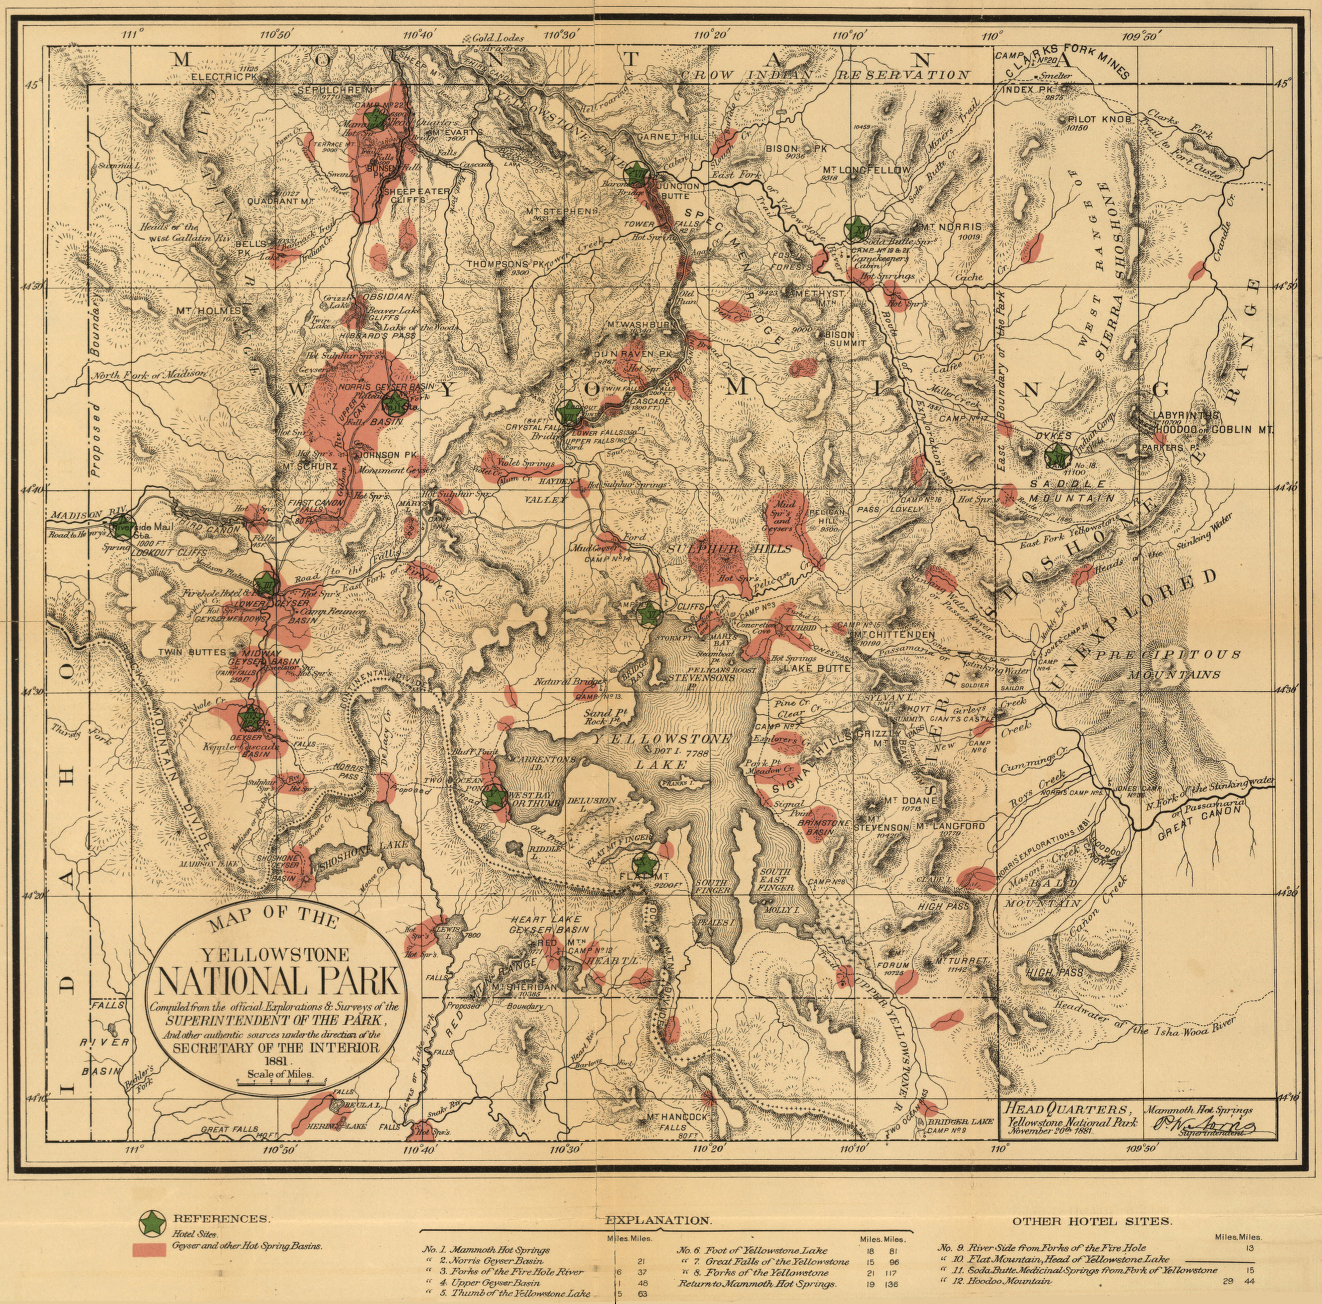 Yellowstone National Park 1881 Historical Map from the Library of Congress Collection